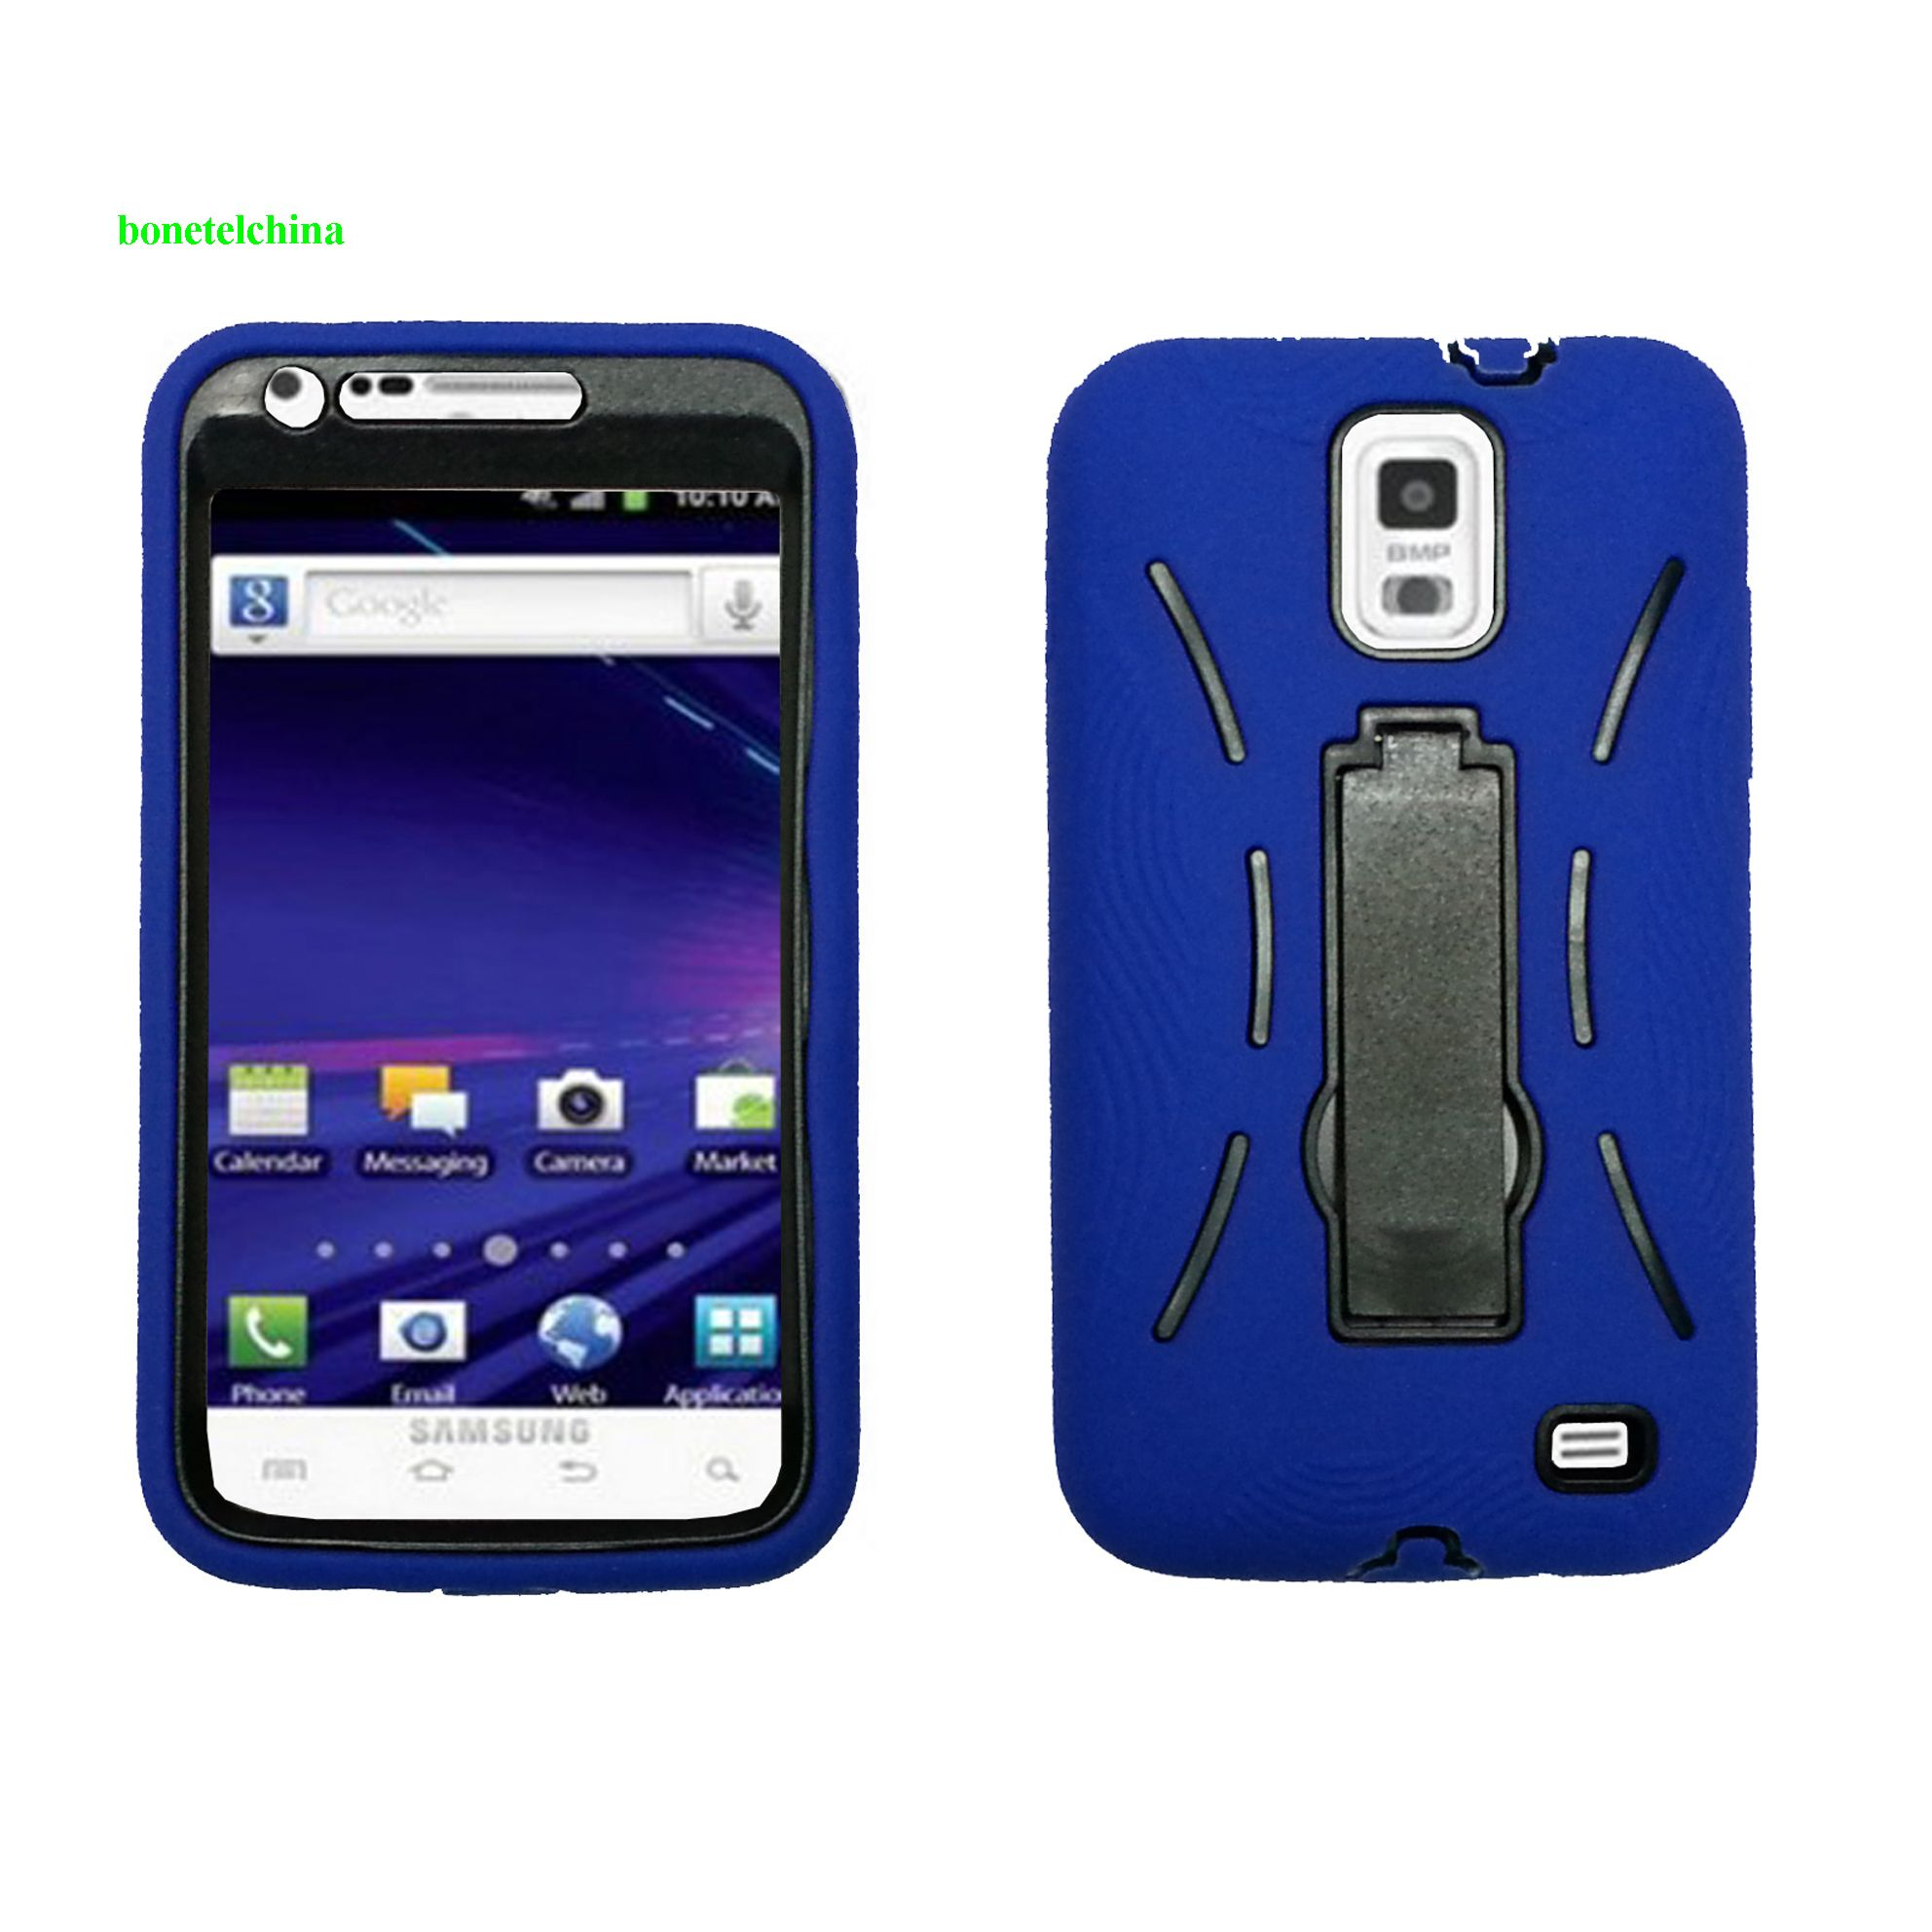 Robot defender case Silicone+PC Anti Impact Hybrid Case Kickstand shell For Samsung Galaxy SII Skyrocket I727 Blue black